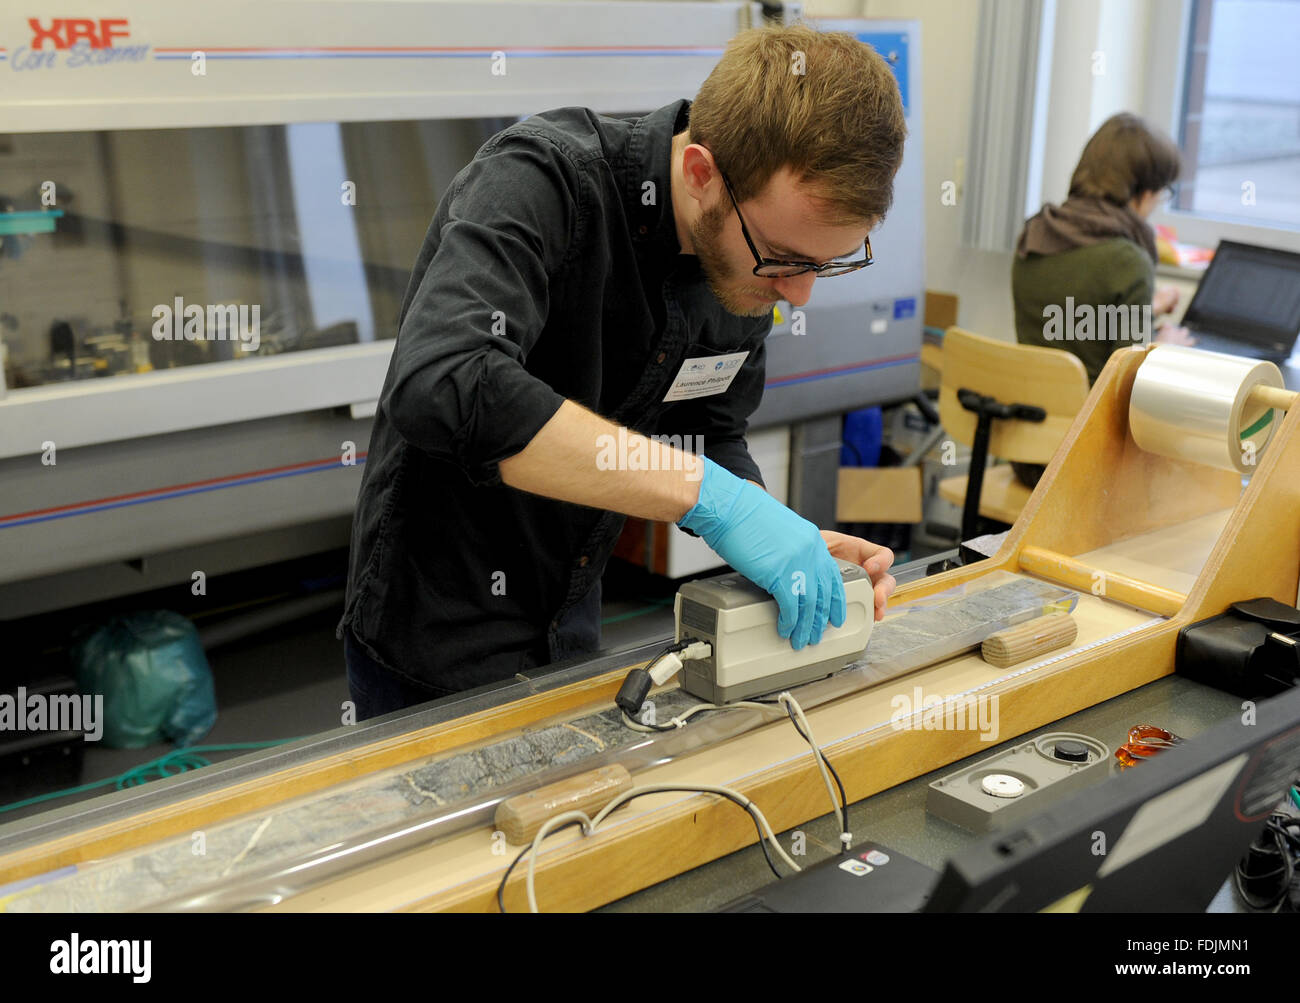 Bremen, Germany. 01st Feb, 2016. Marine scientist Laurence Philpott prepares the scan of a drill core sample from - Stock Image